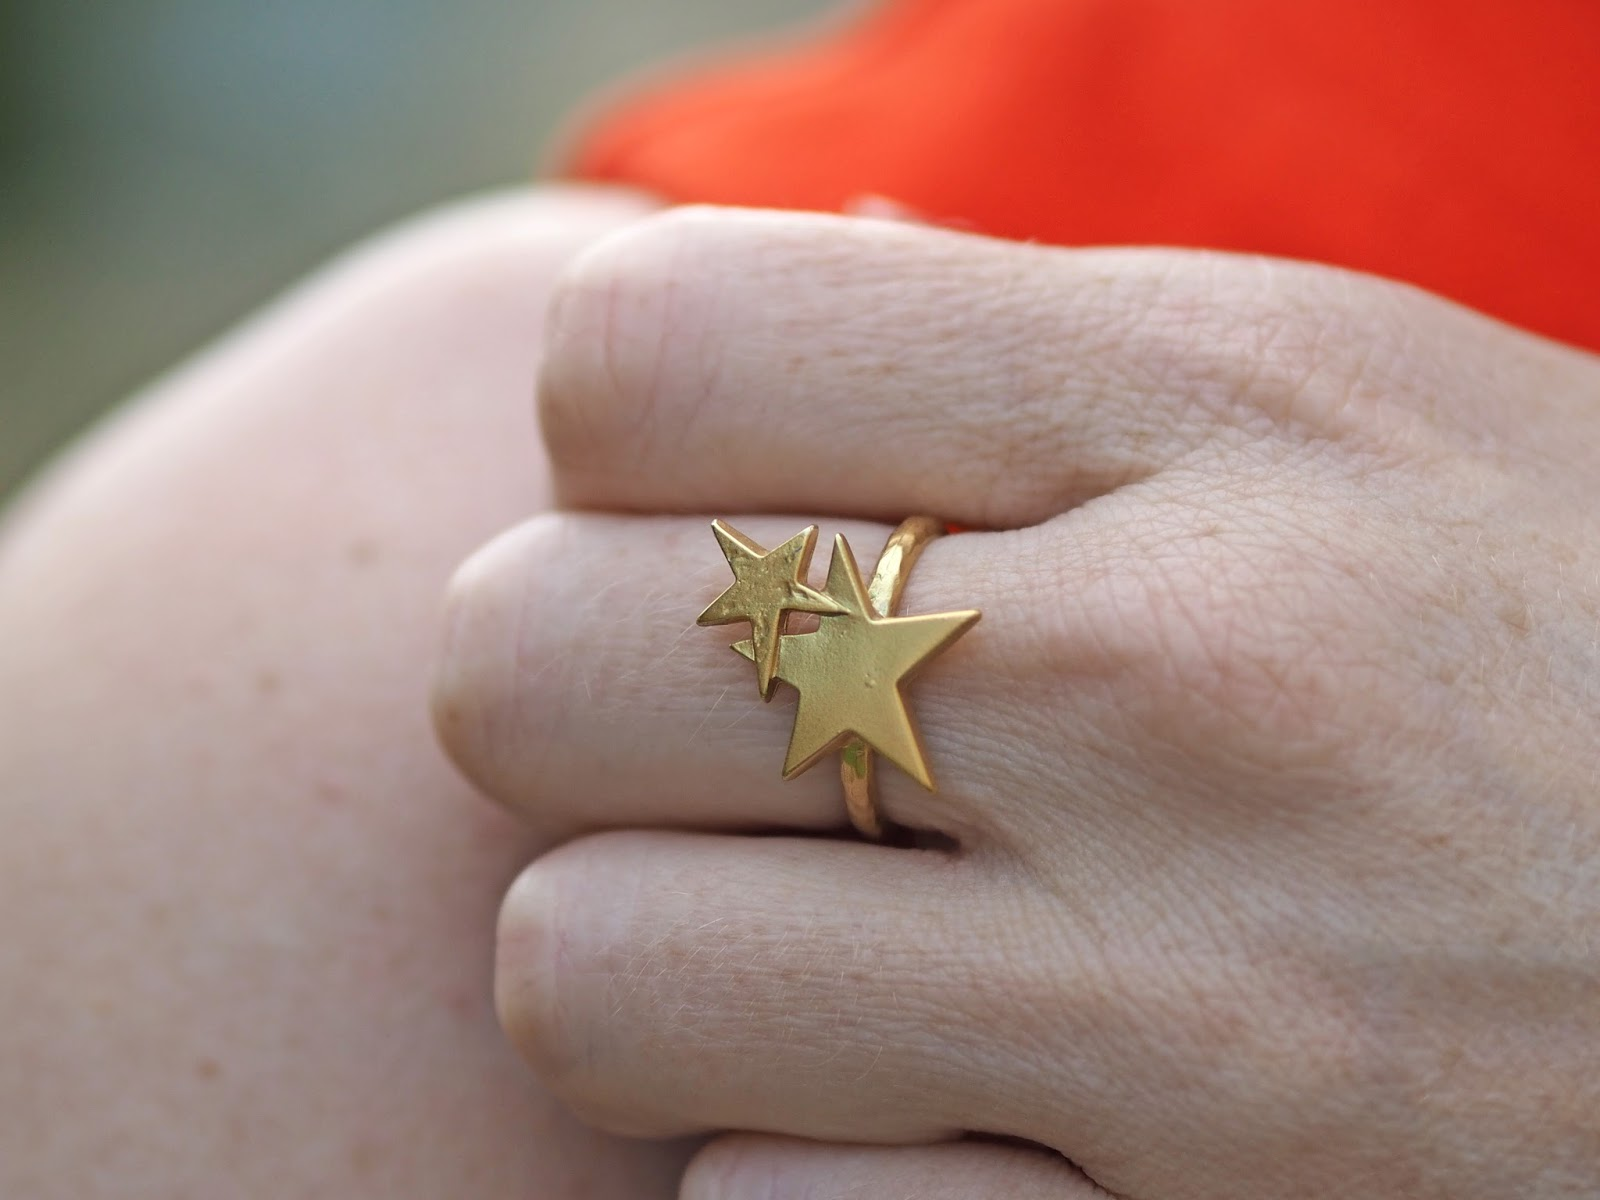 Gold stars ring by Danon from Lizzy O